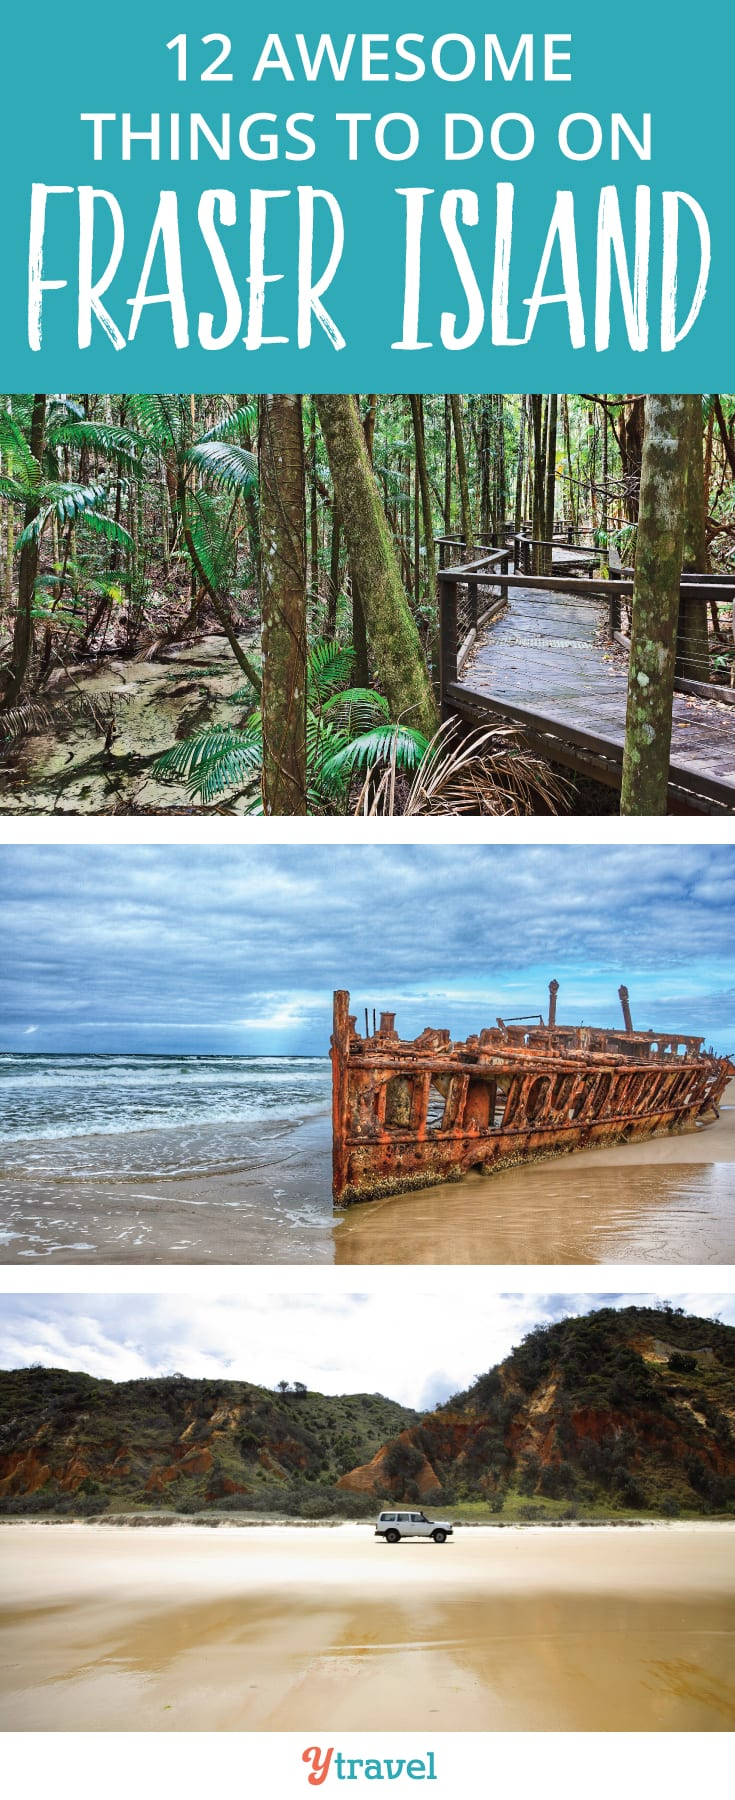 Things to do on Fraser Island: Fraser Island is the largest sand island in the world and one of the most beautiful to explore in Queensland. Check out the post for some epic adventures to have on Fraser Island including beach driving, whale watching and dingo watching.